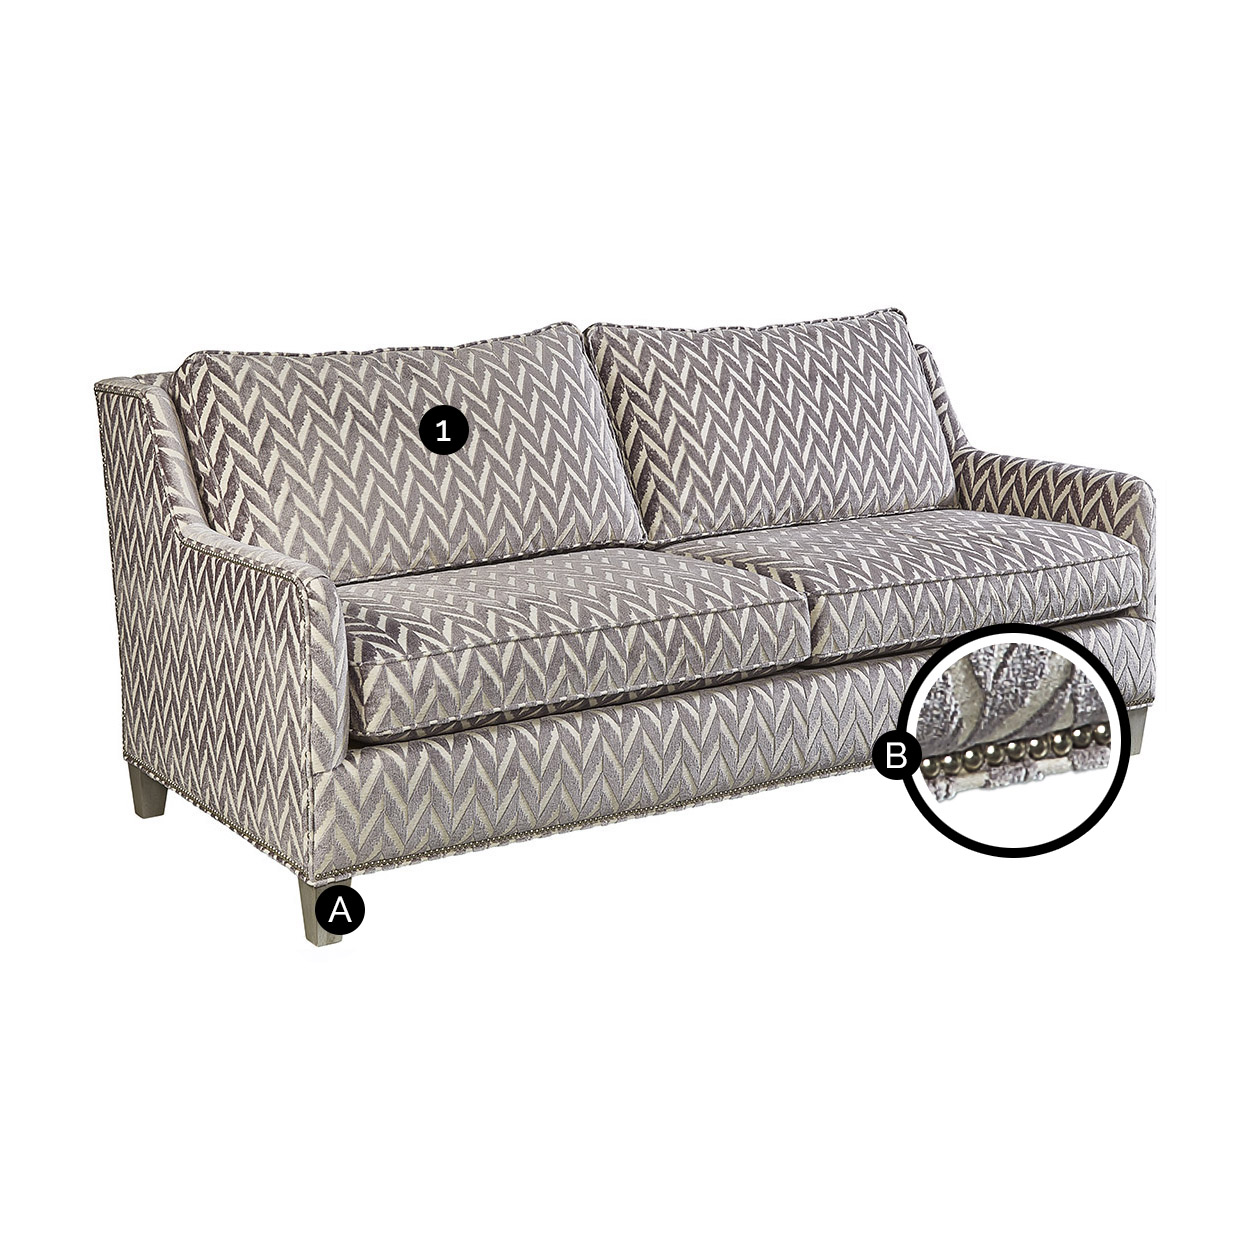 Peachy Benjamin Sofa Caraccident5 Cool Chair Designs And Ideas Caraccident5Info